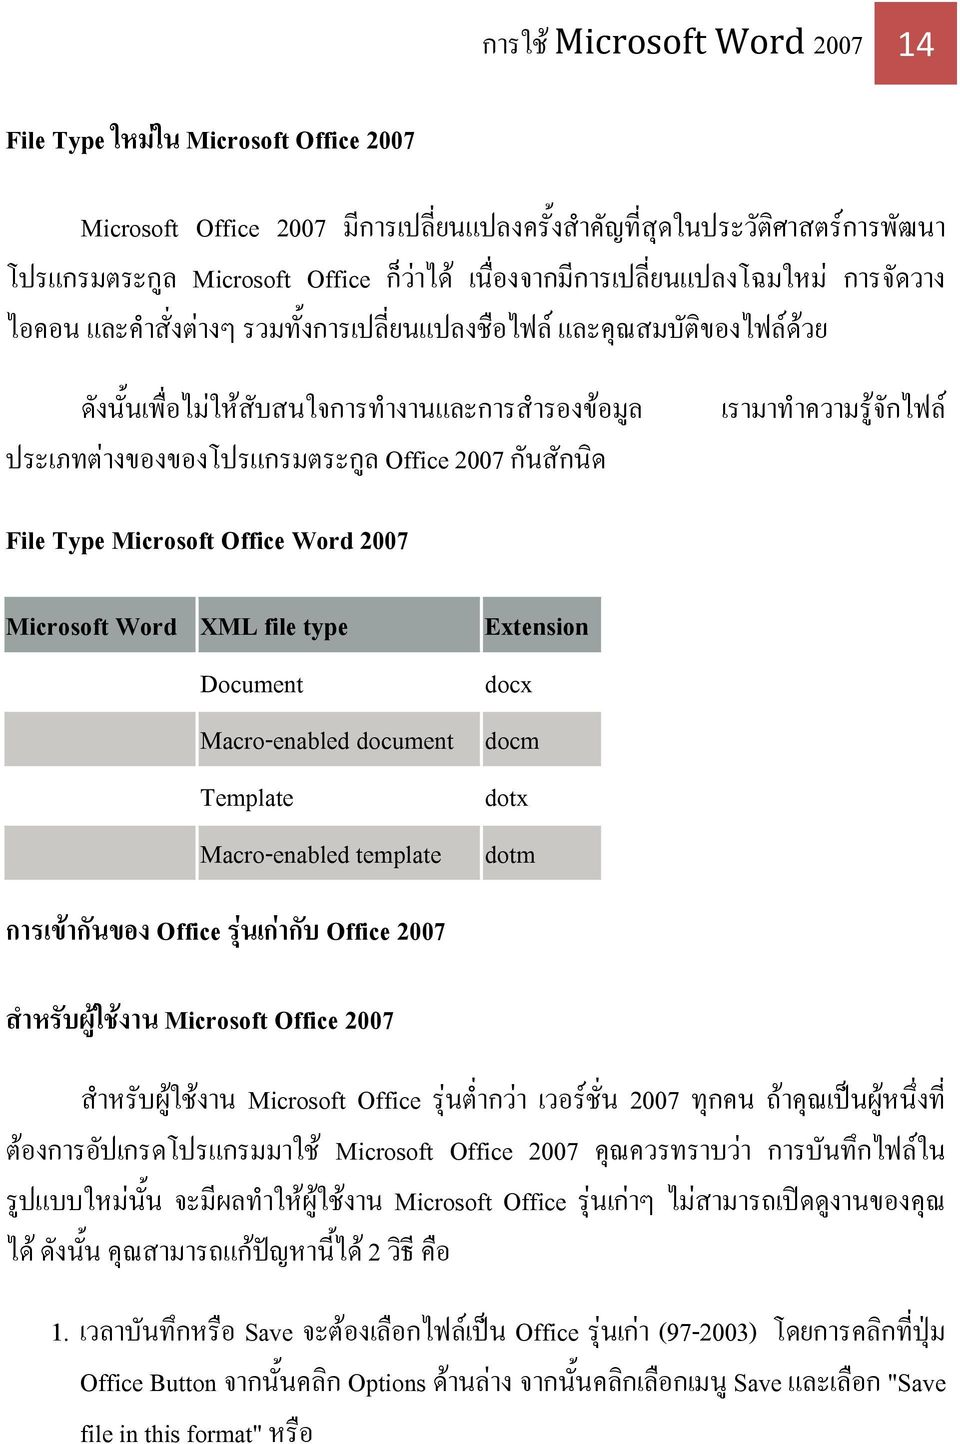 Office 2007 ก นส กน ด File Type Microsoft Office Word 2007 Microsoft Word XML file type Document Macro-enabled document Template Macro-enabled template Extension docx docm dotx dotm การเข าก นของ